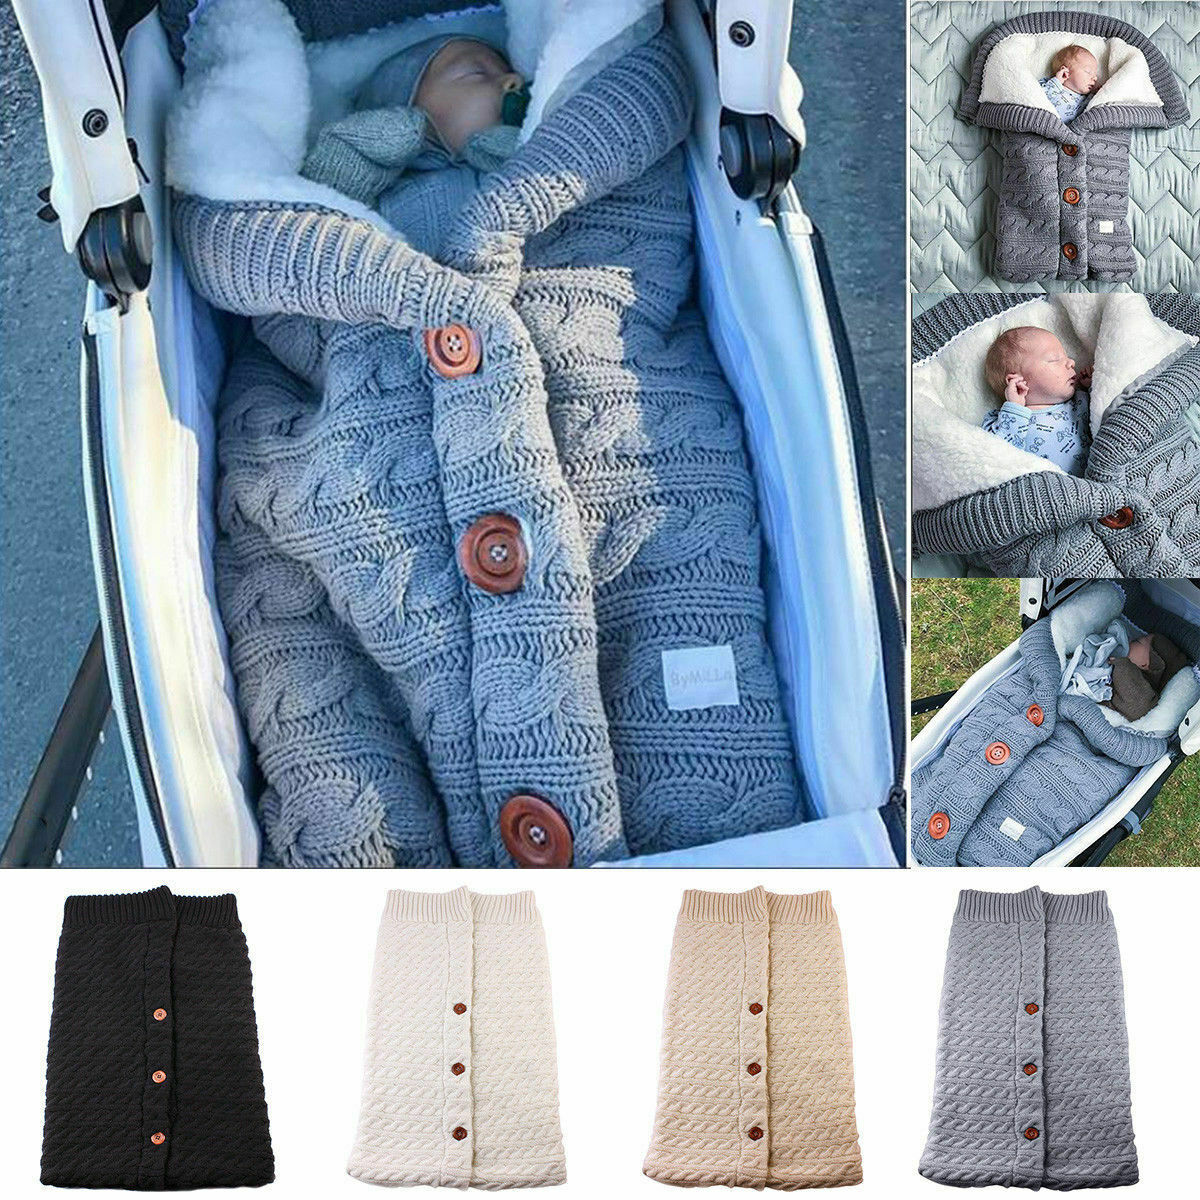 Warm Comfortable Knitted Crochet Newborn Baby Sleeping Bag Infant Trolley Wrapped Sleeping Blanket Winter Boy Girl Sleeping Bag